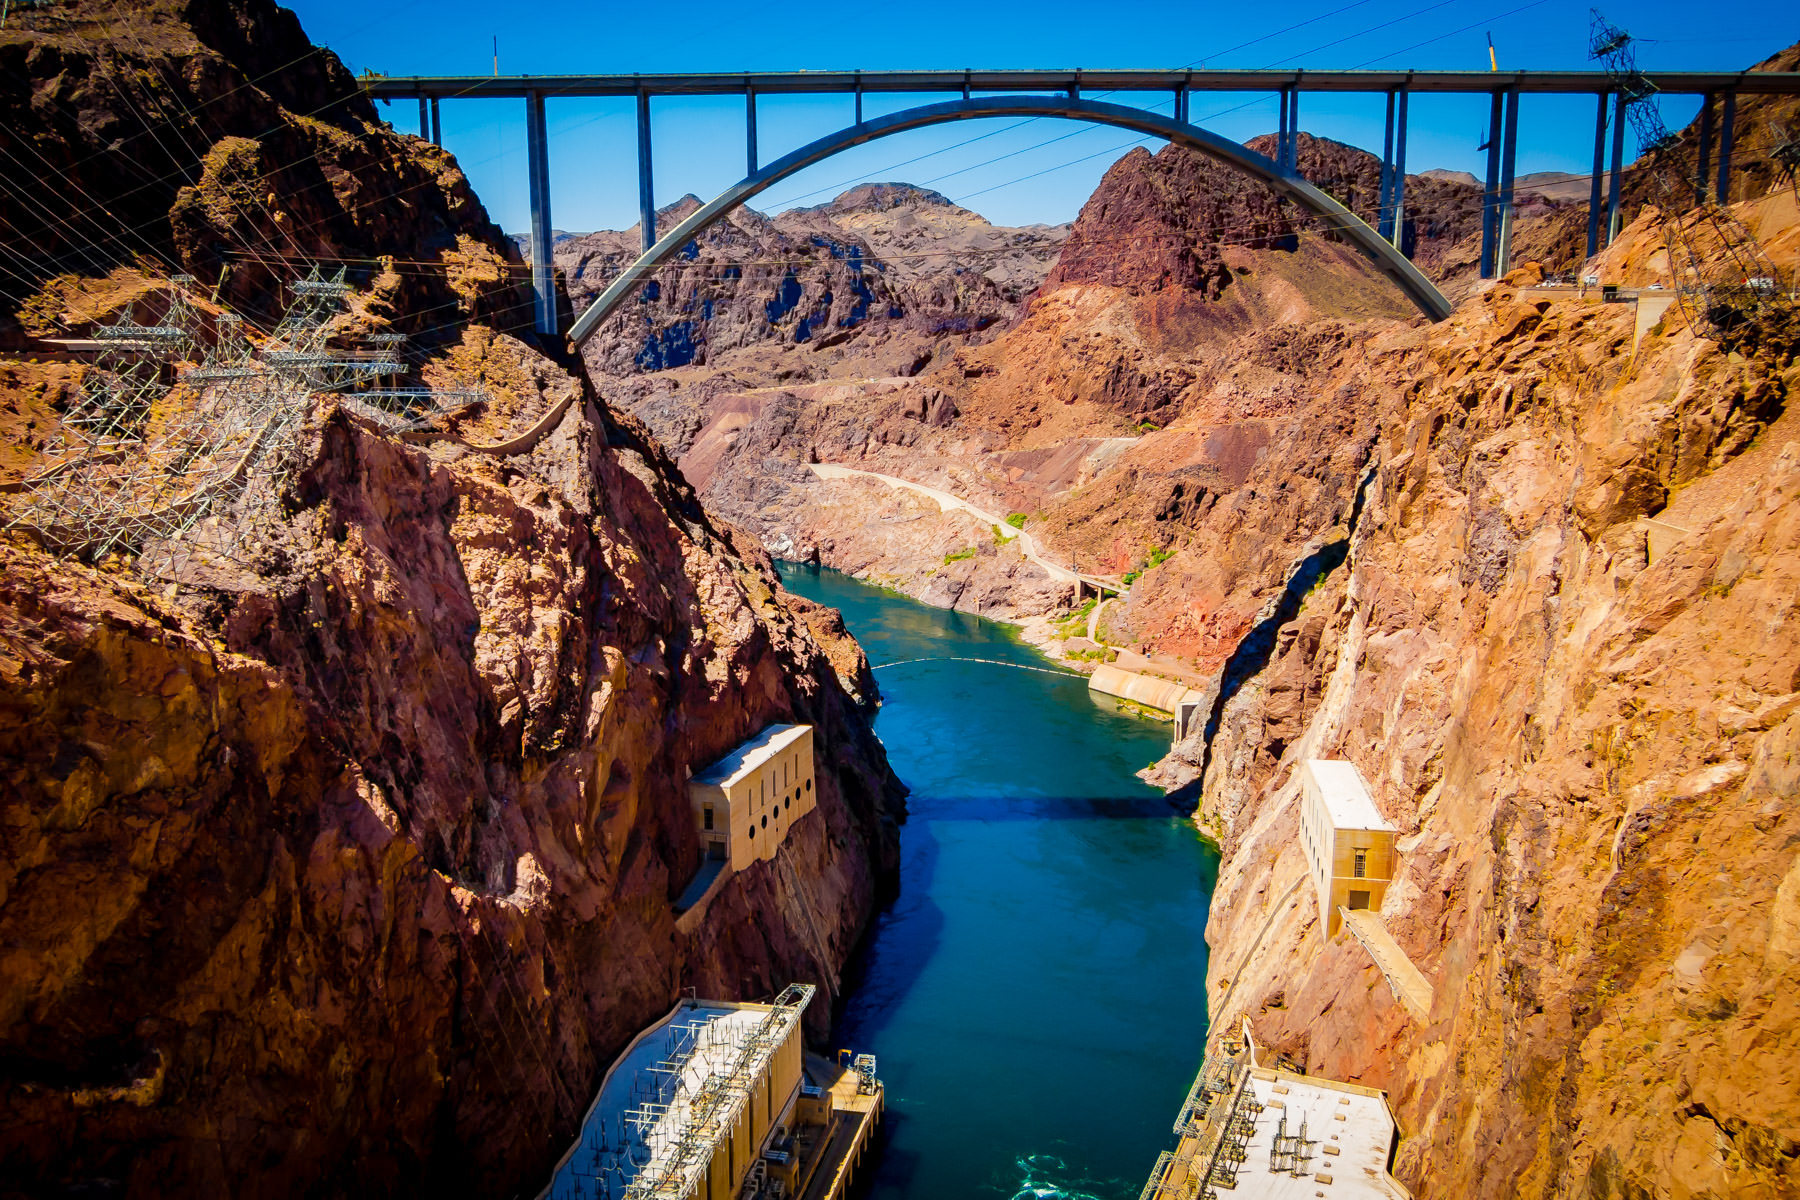 The Mike O'Callaghan–Pat Tillman Memorial Bridge, spanning the Colorado River and connecting Nevada and Arizona, as seen from top of Hoover Dam.